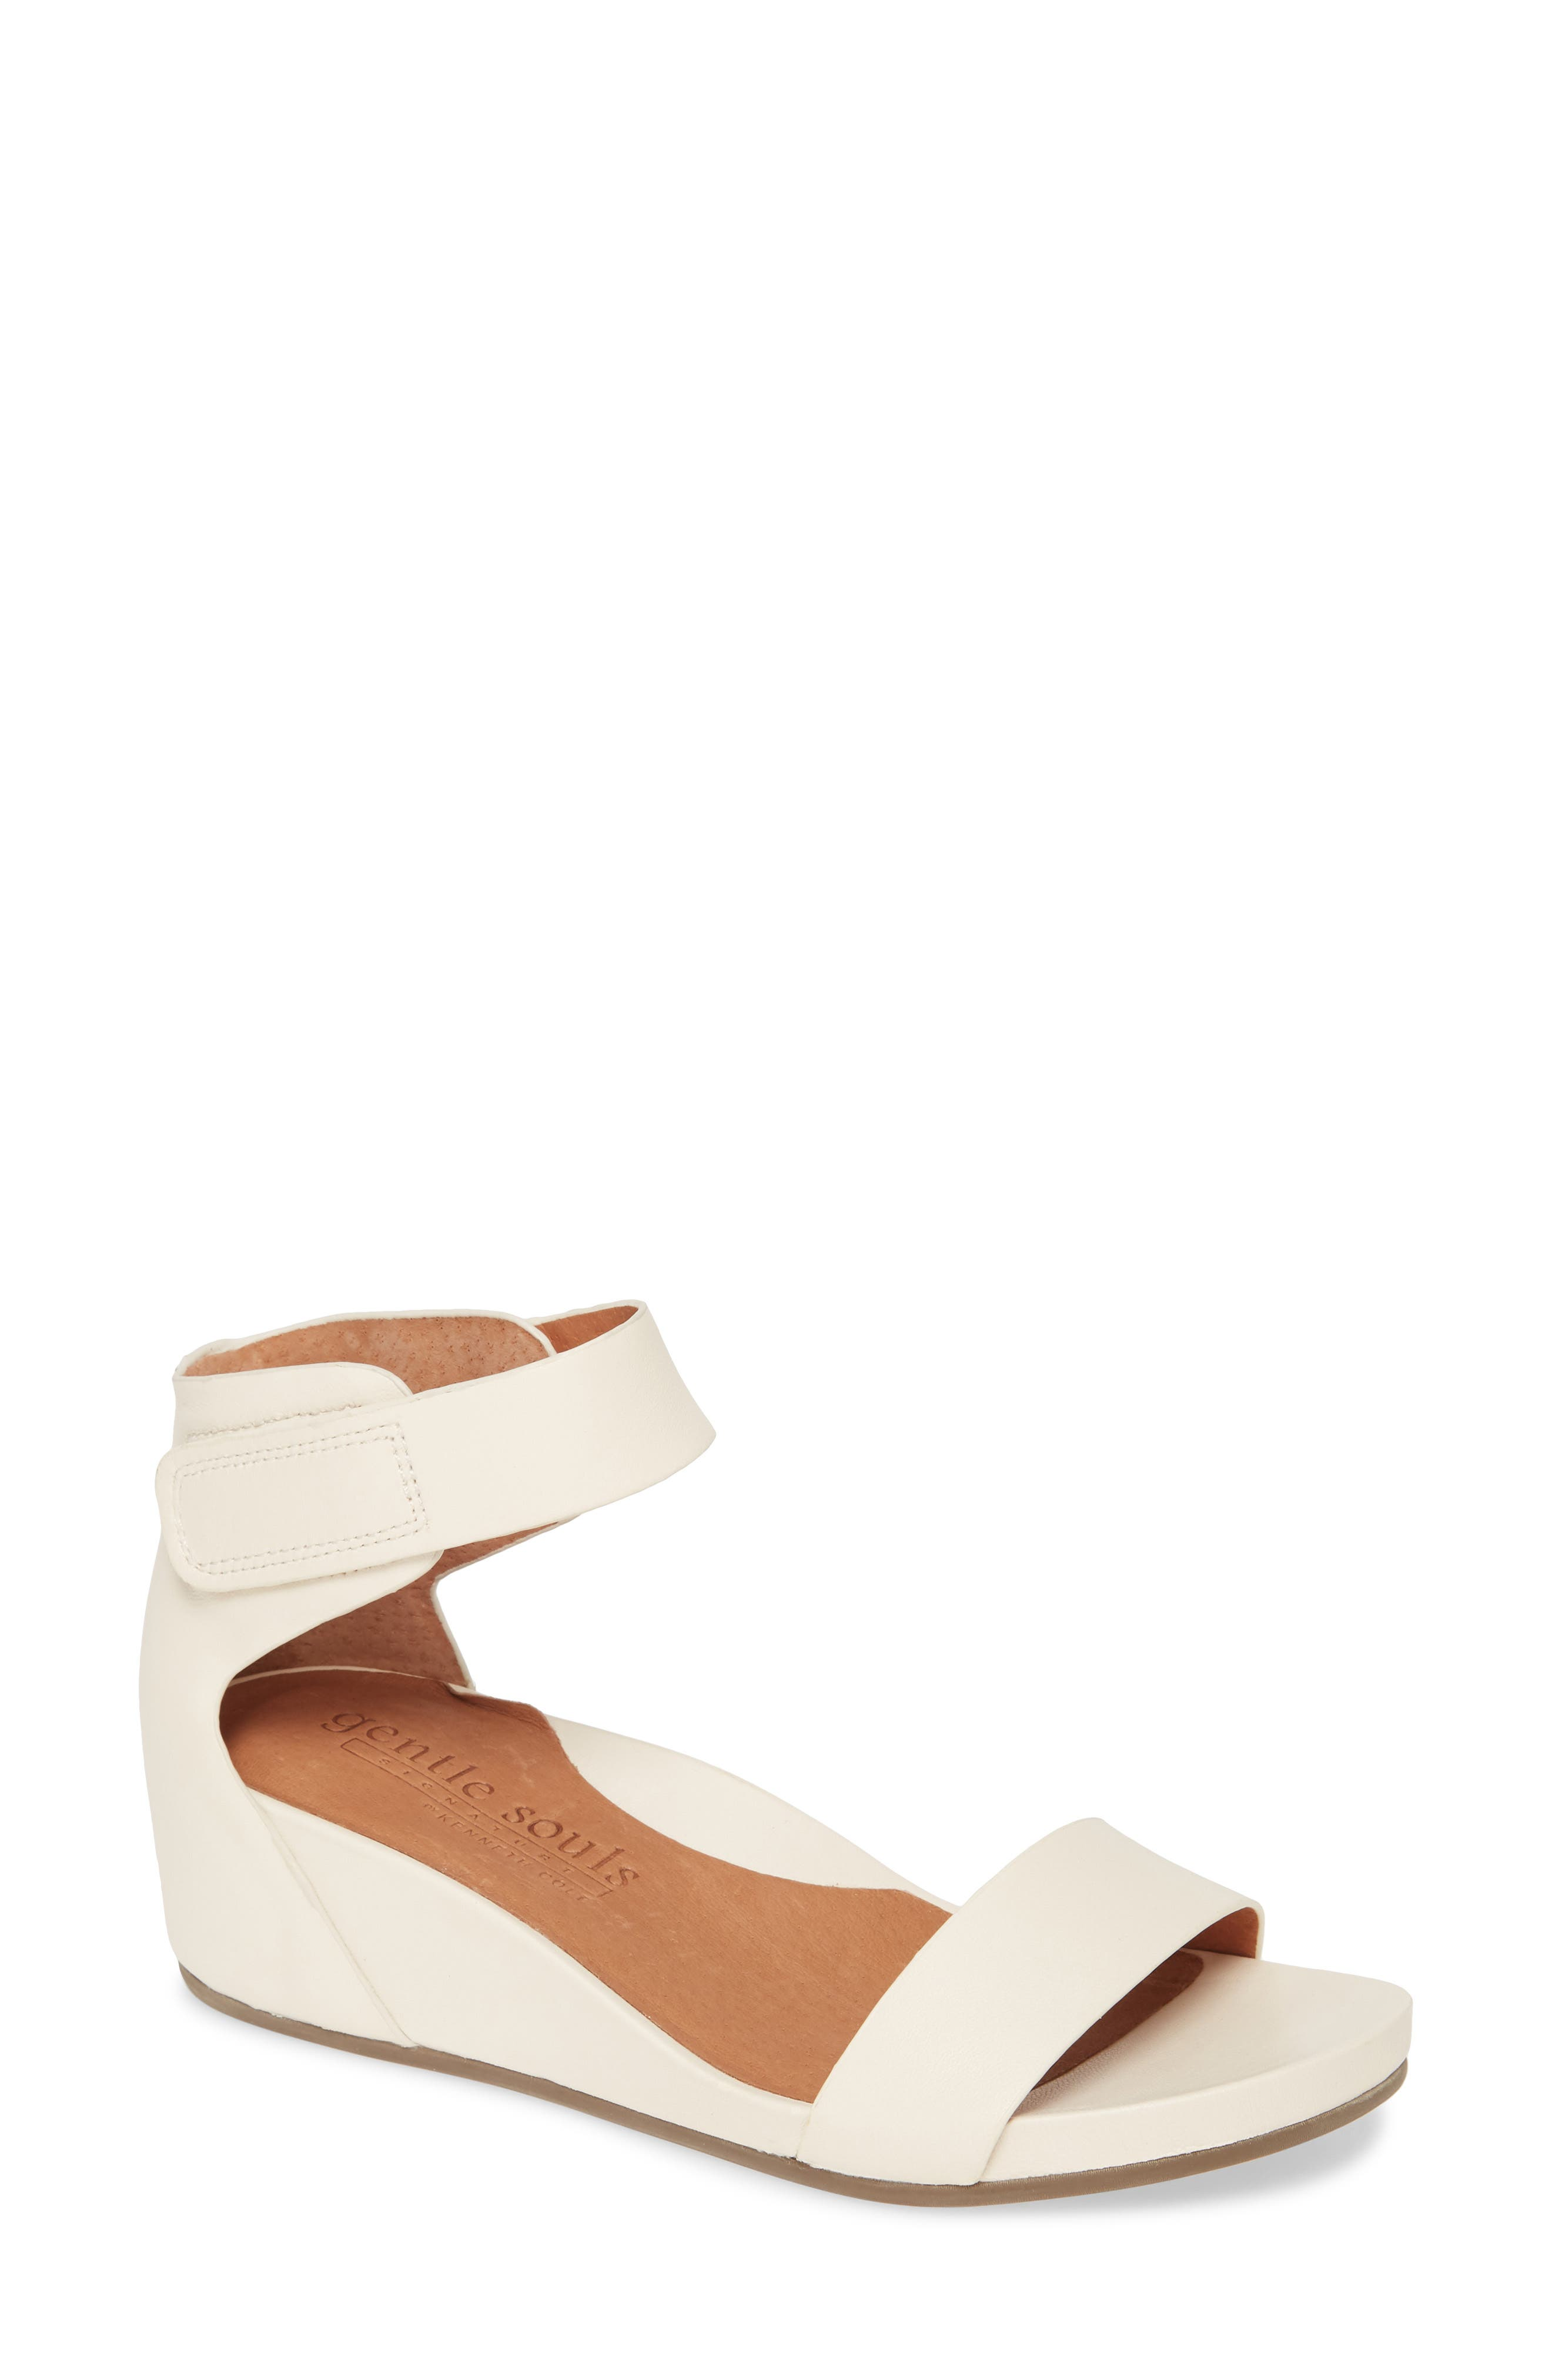 Gentle Souls Signature Gianna Wedge Sandal (Women)